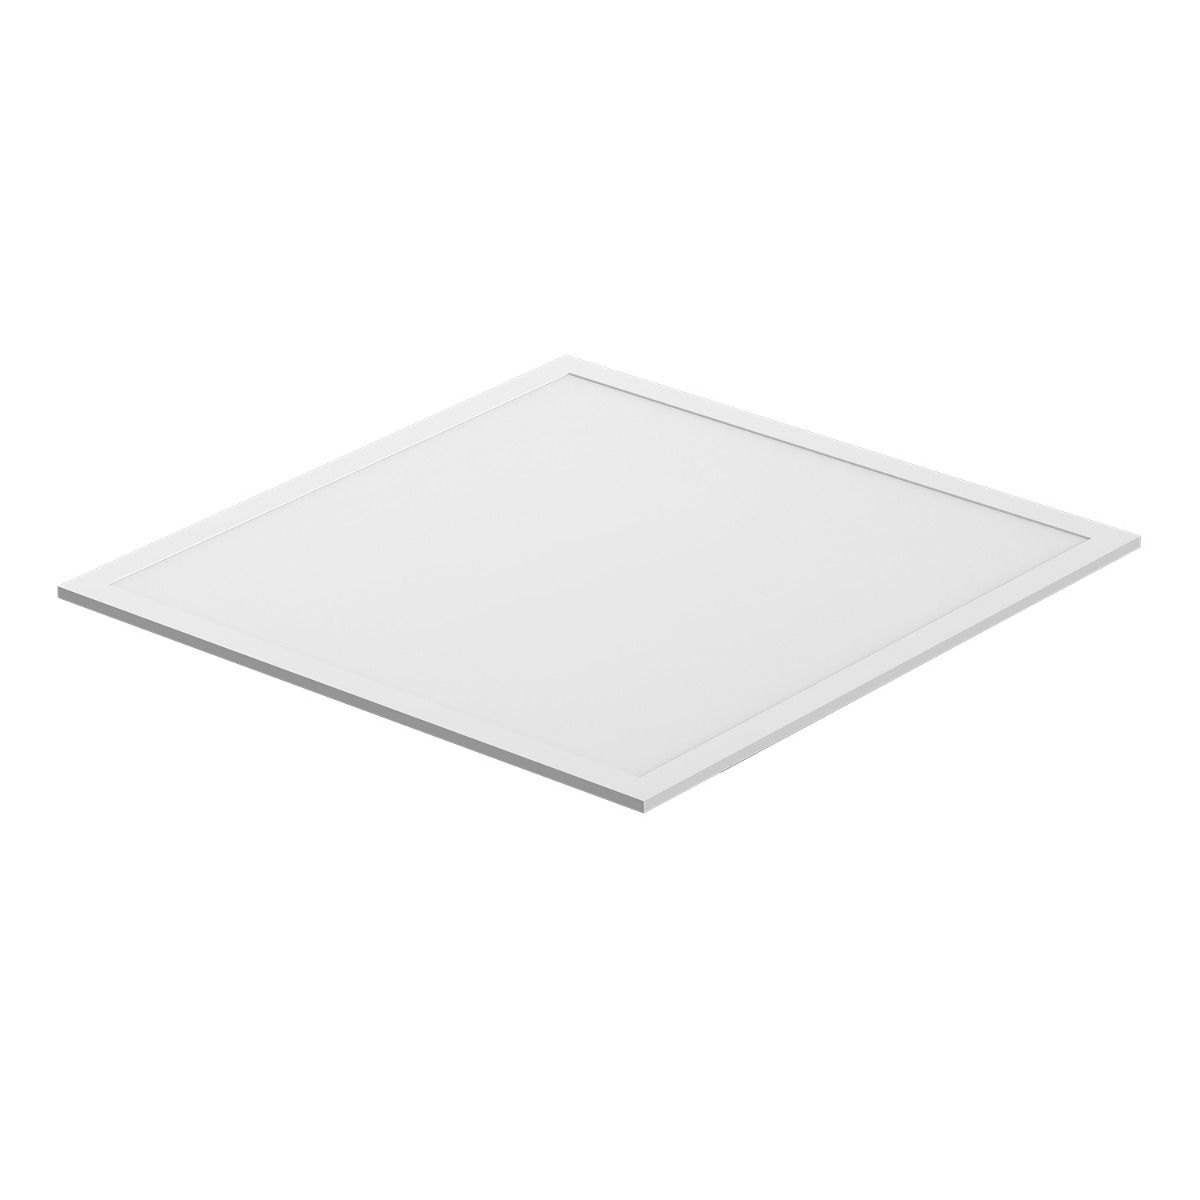 Noxion LED Panel Delta Pro Highlum V2.0 Xitanium DALI 40W 60x60cm 3000K 5280lm UGR <19 | Dali Dimmable - Replacer for 4x18W